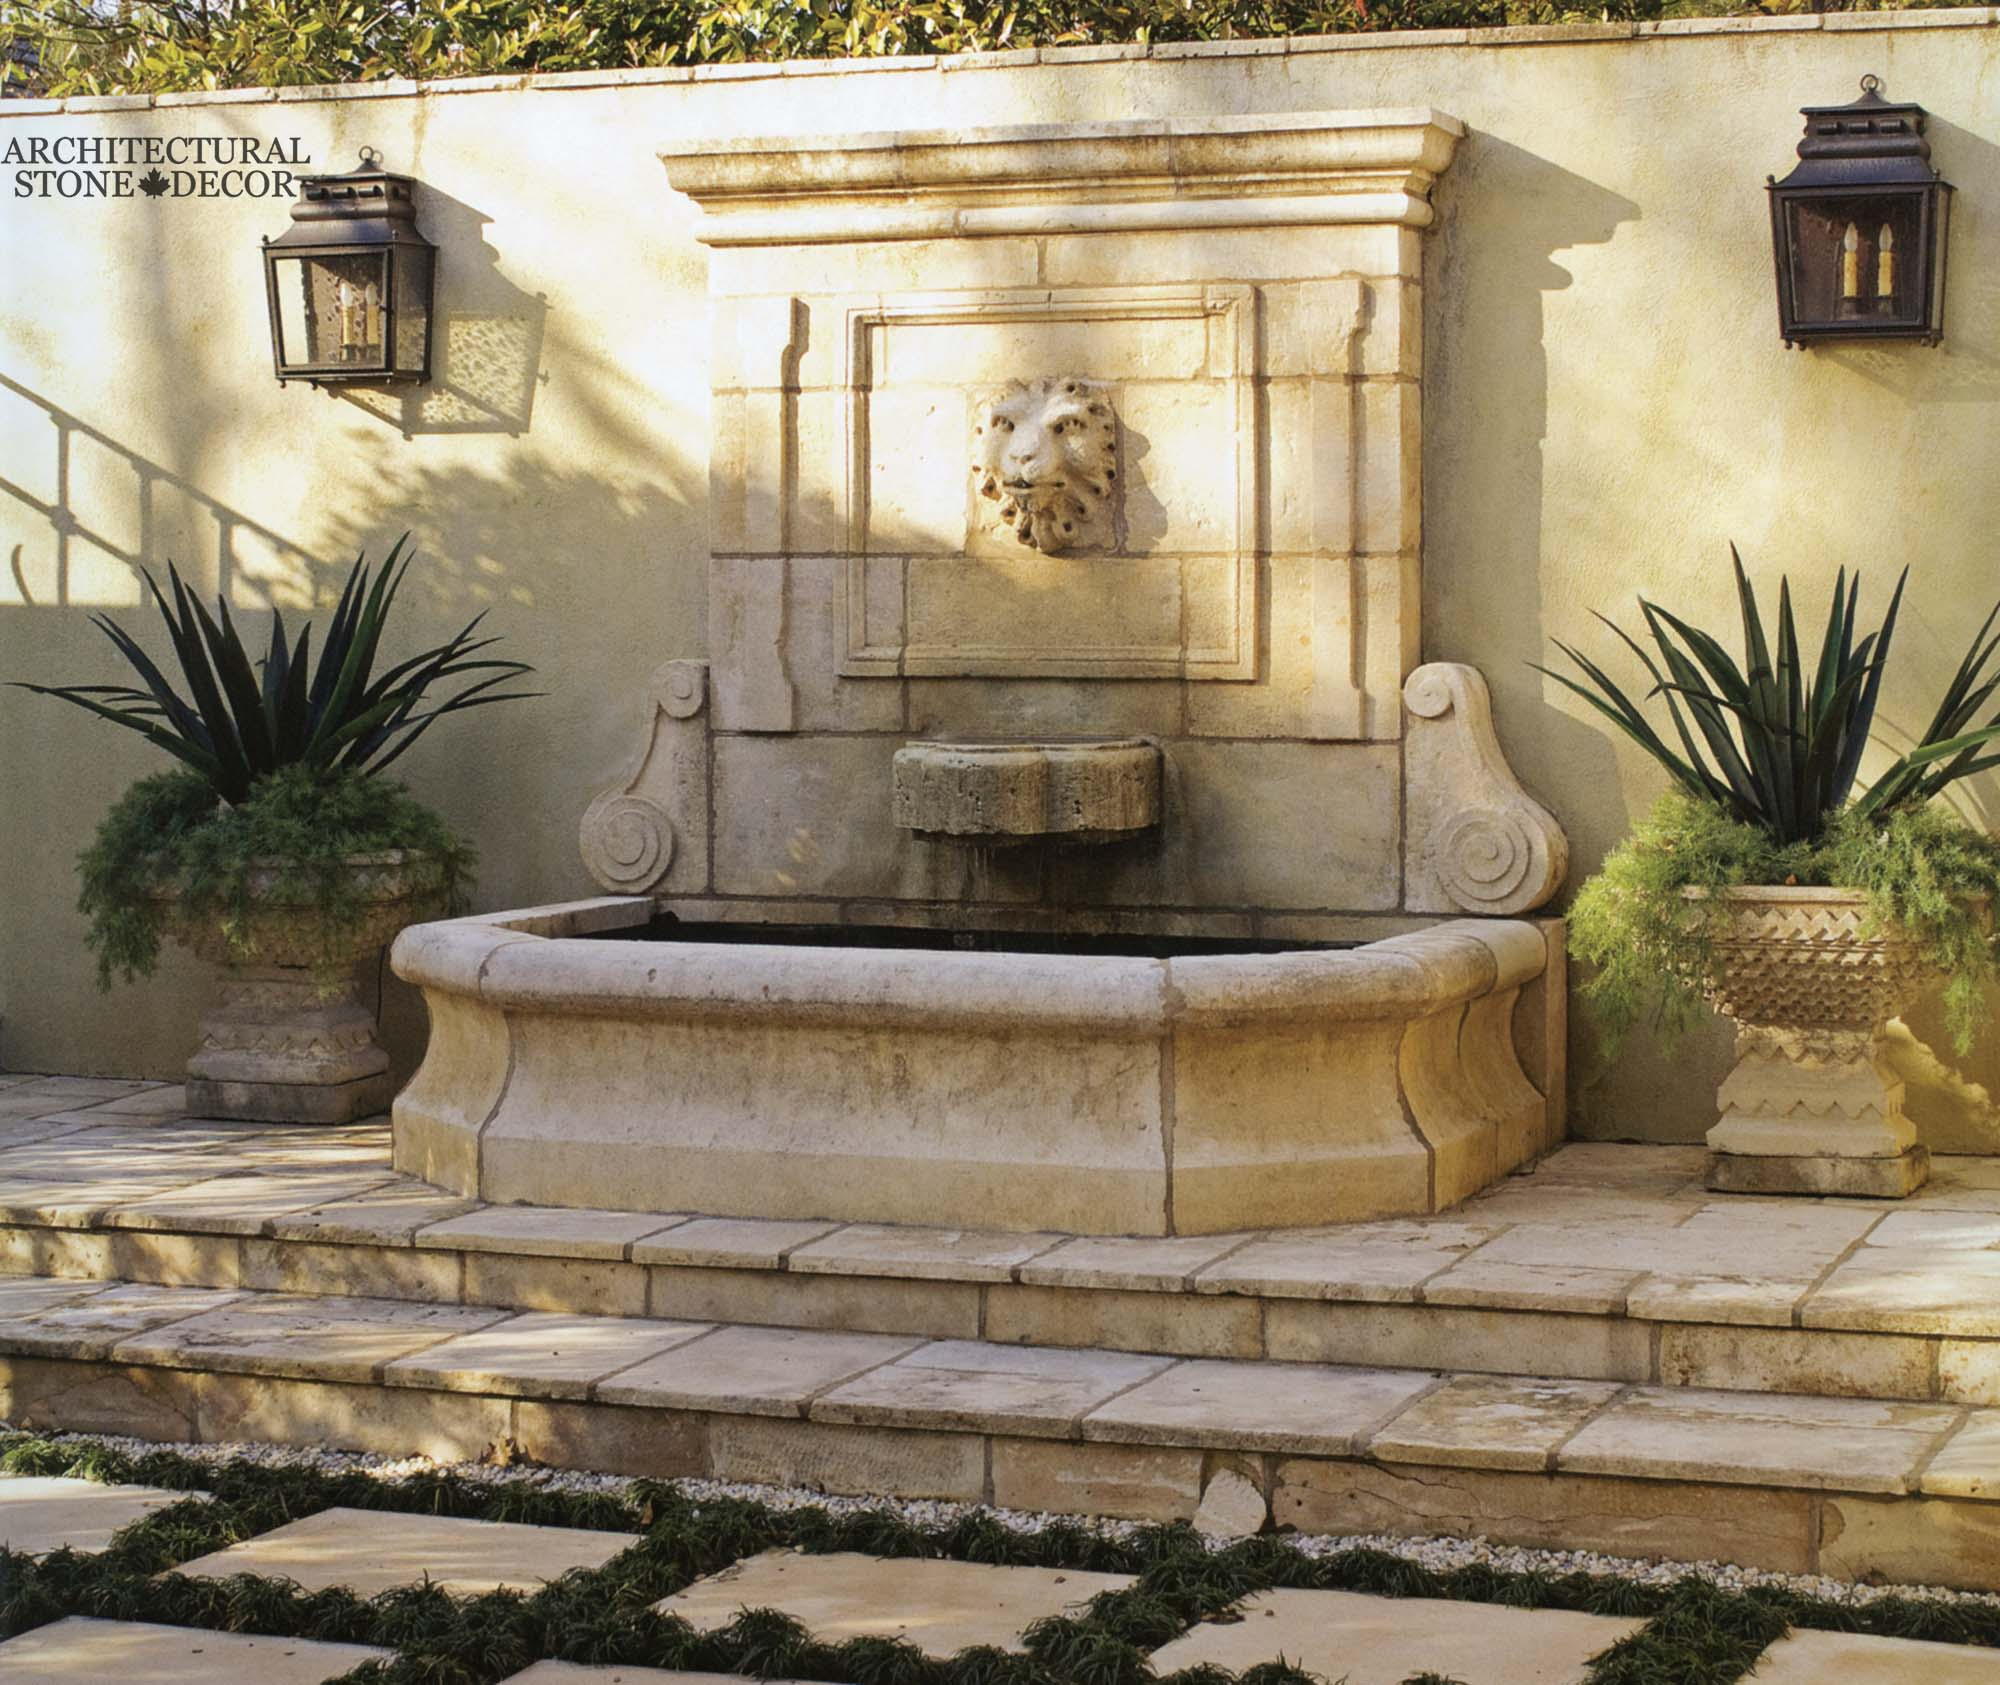 19 Spectacular Wall Fountain Ideas on rustic gardening, garden fountains, beautiful backyard fountains, classic backyard fountains, tropical backyard fountains, modern backyard fountains, unique backyard fountains, elegant backyard fountains, large backyard fountains, wood backyard fountains, small backyard fountains, bird baths and fountains,